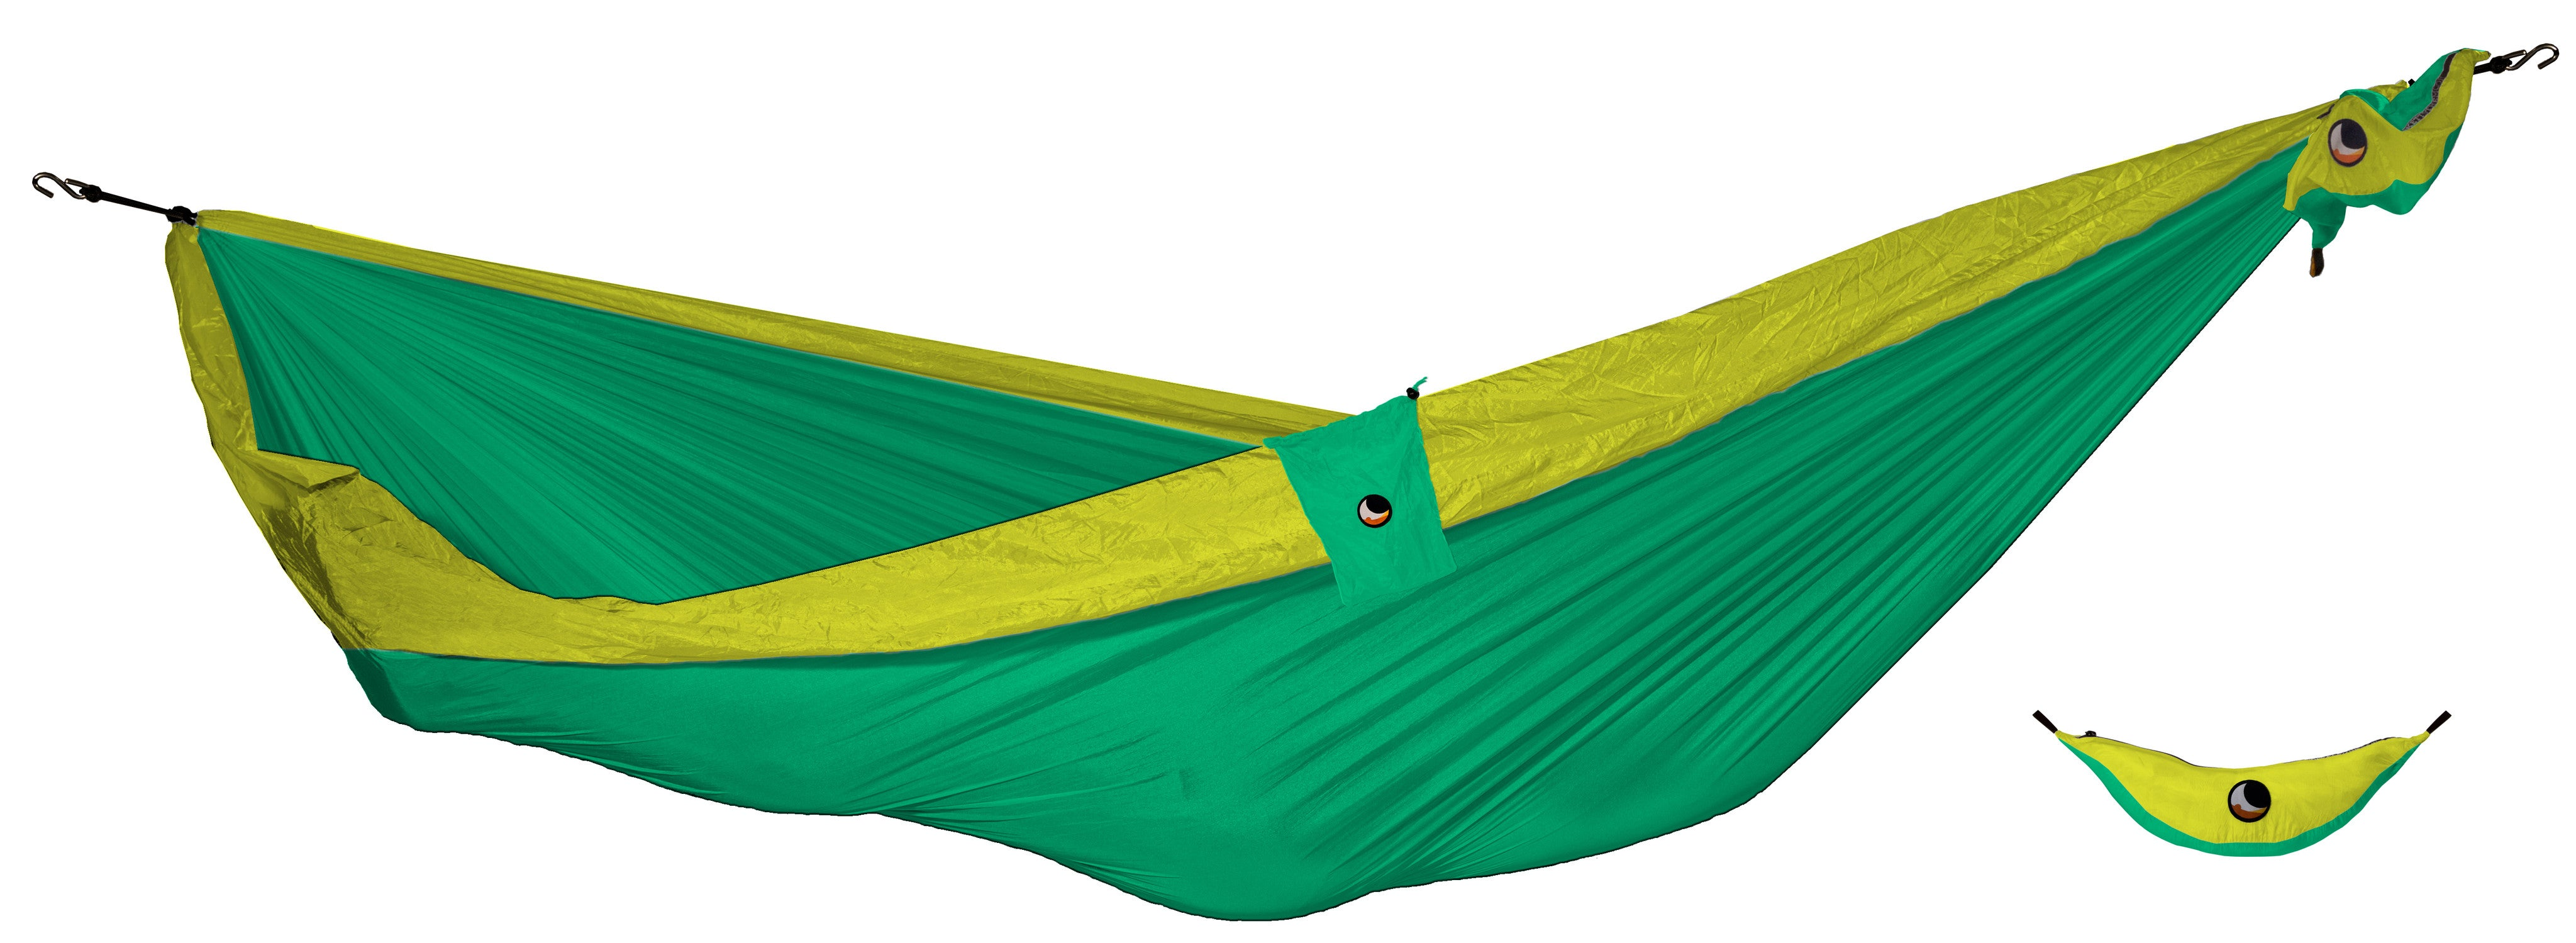 hammock chair products lemon kolibri images colours red belize vulcano dded